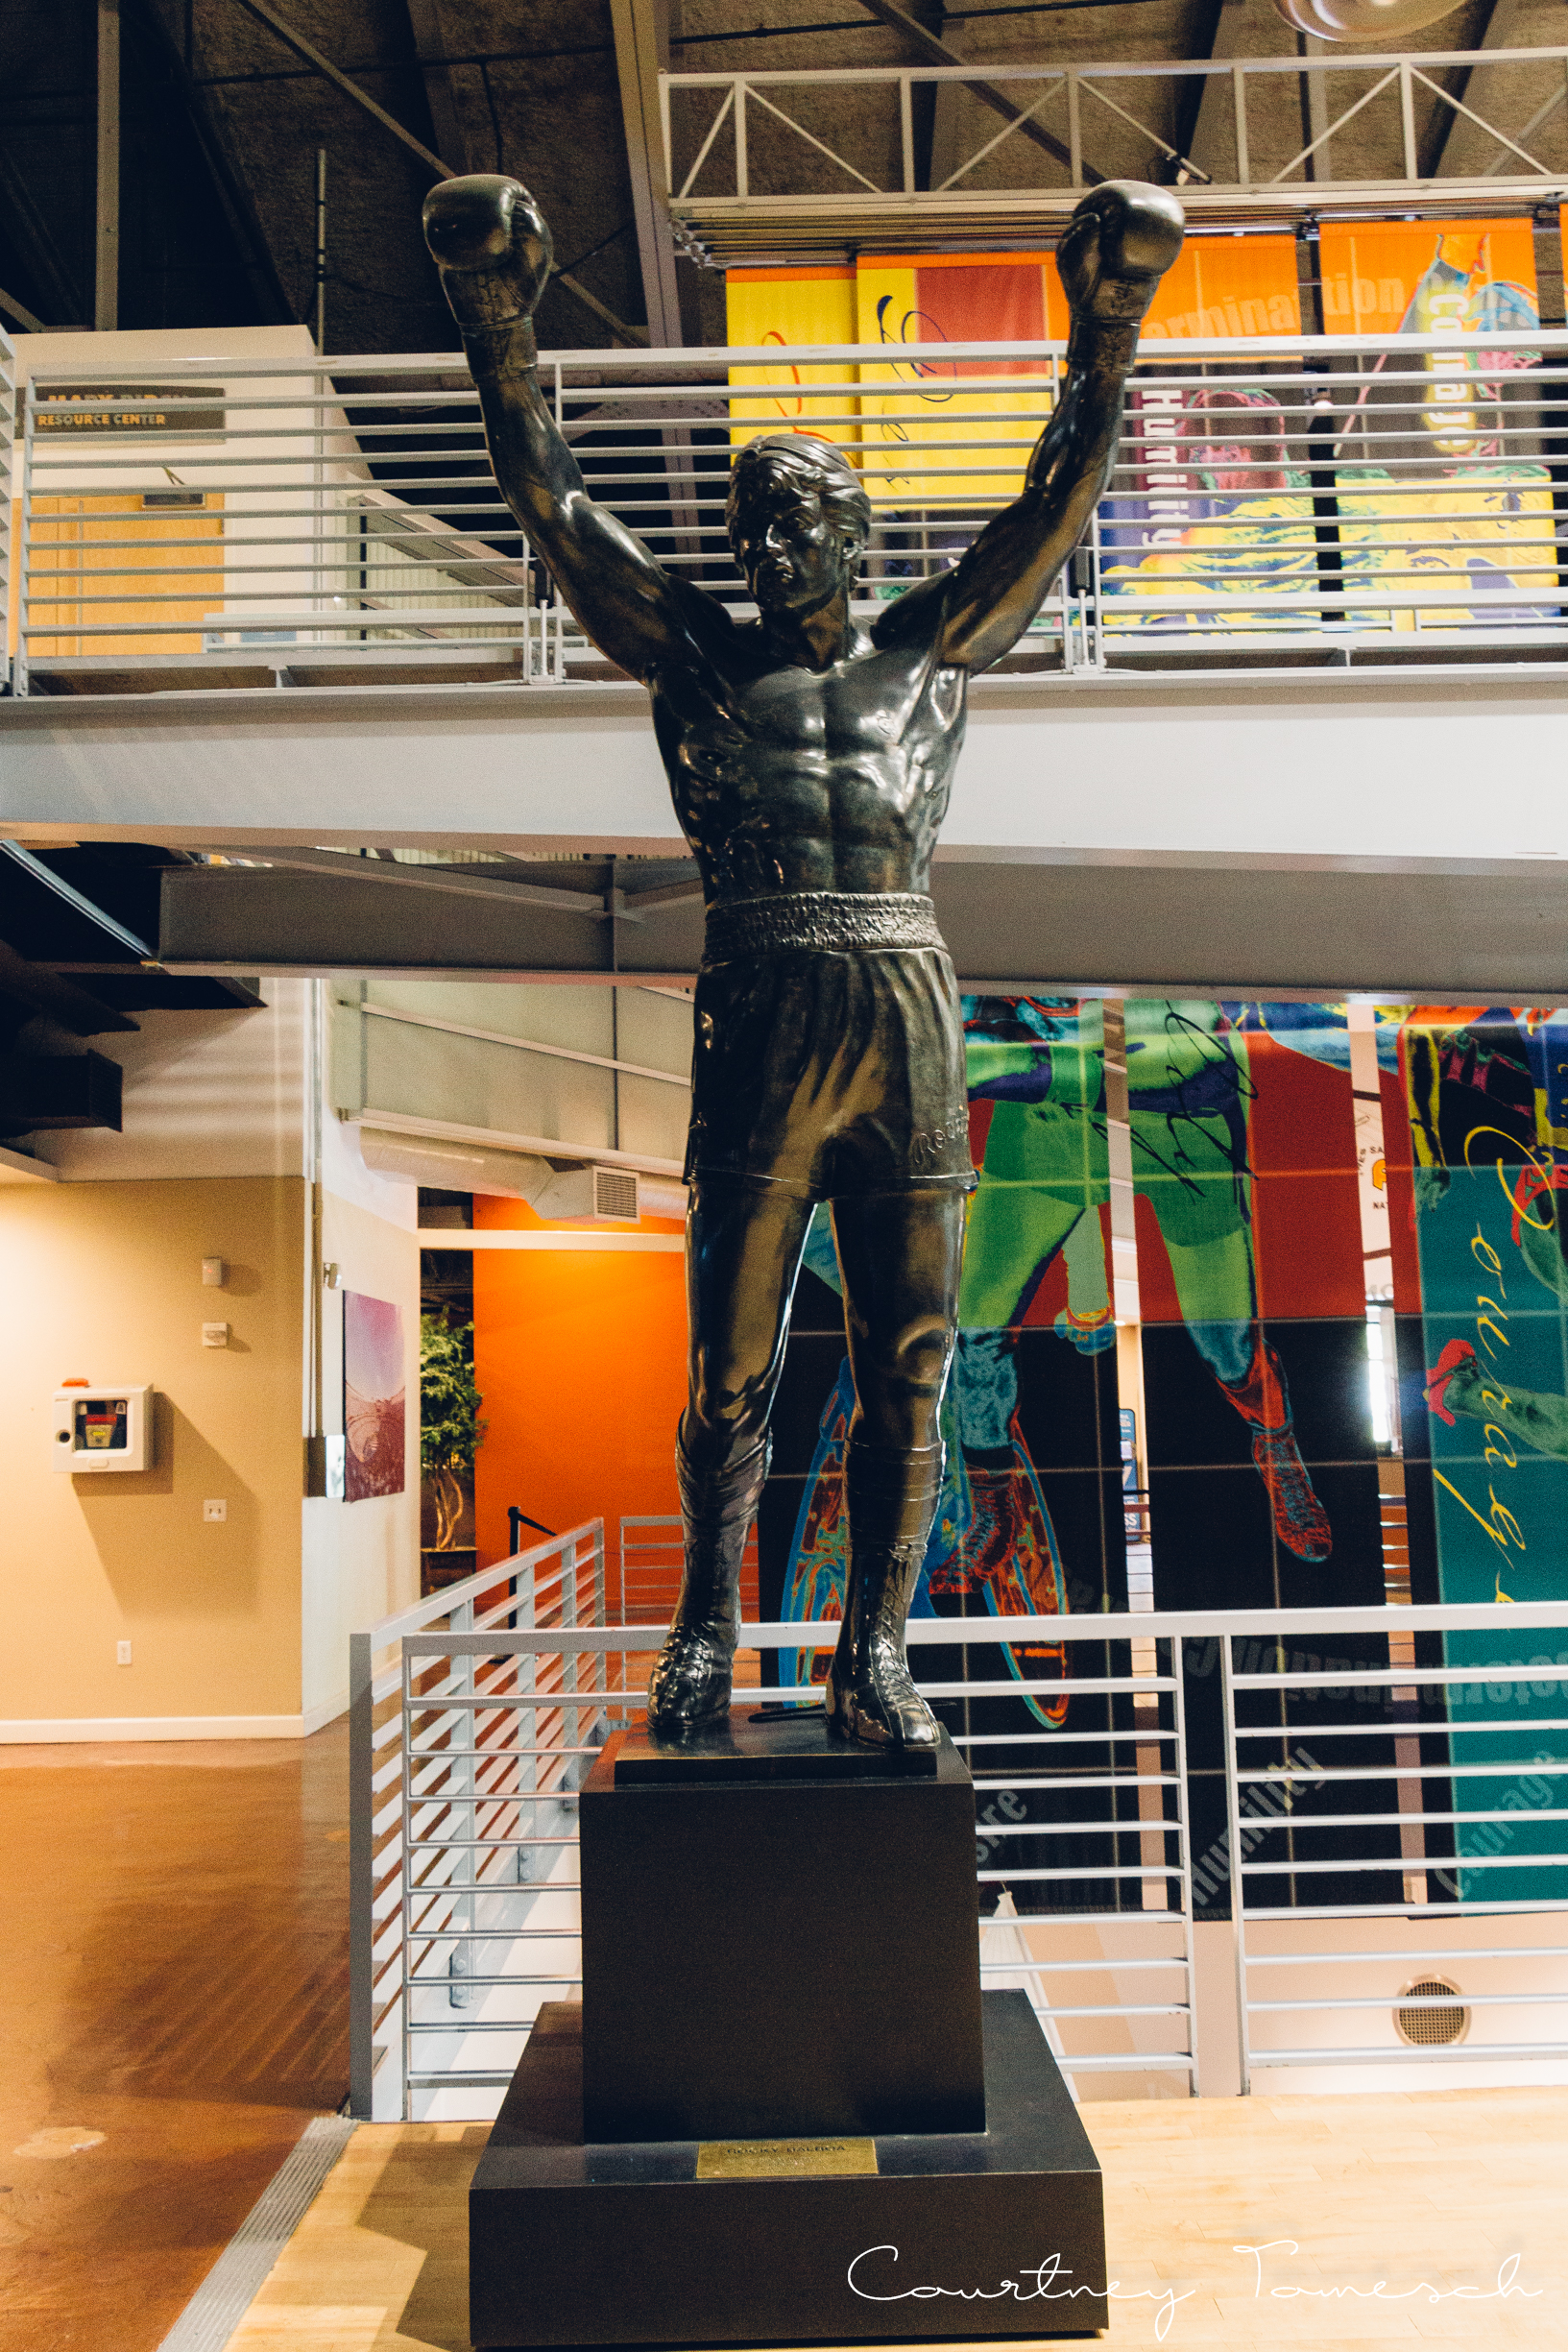 3 statue were made for Rocky III. This one is 2 of 3 on loan to SD Hall of Champions